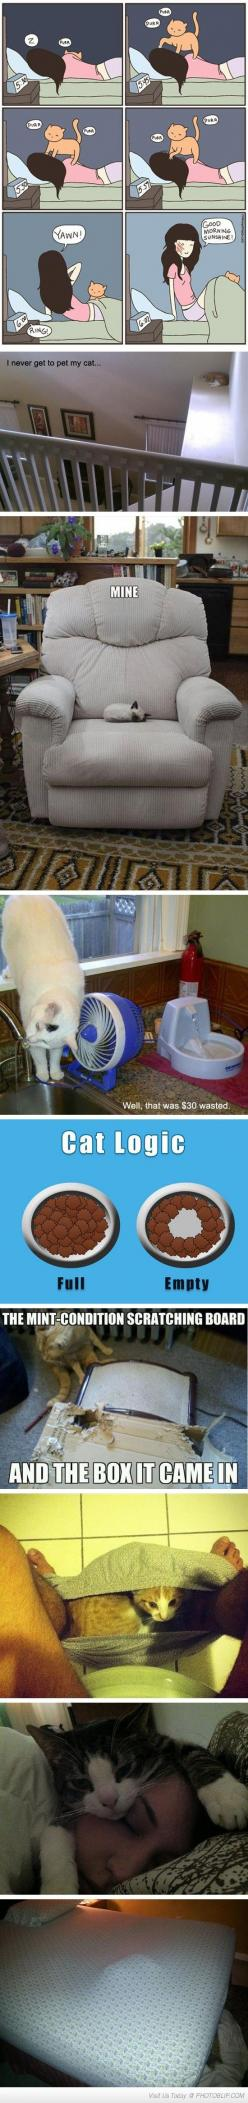 Cats...: Cats Cats, Kitty Cats, Giggle, Funny Cat, Cat Logic, Crazy Cat, Funny Animal, Cat Lady